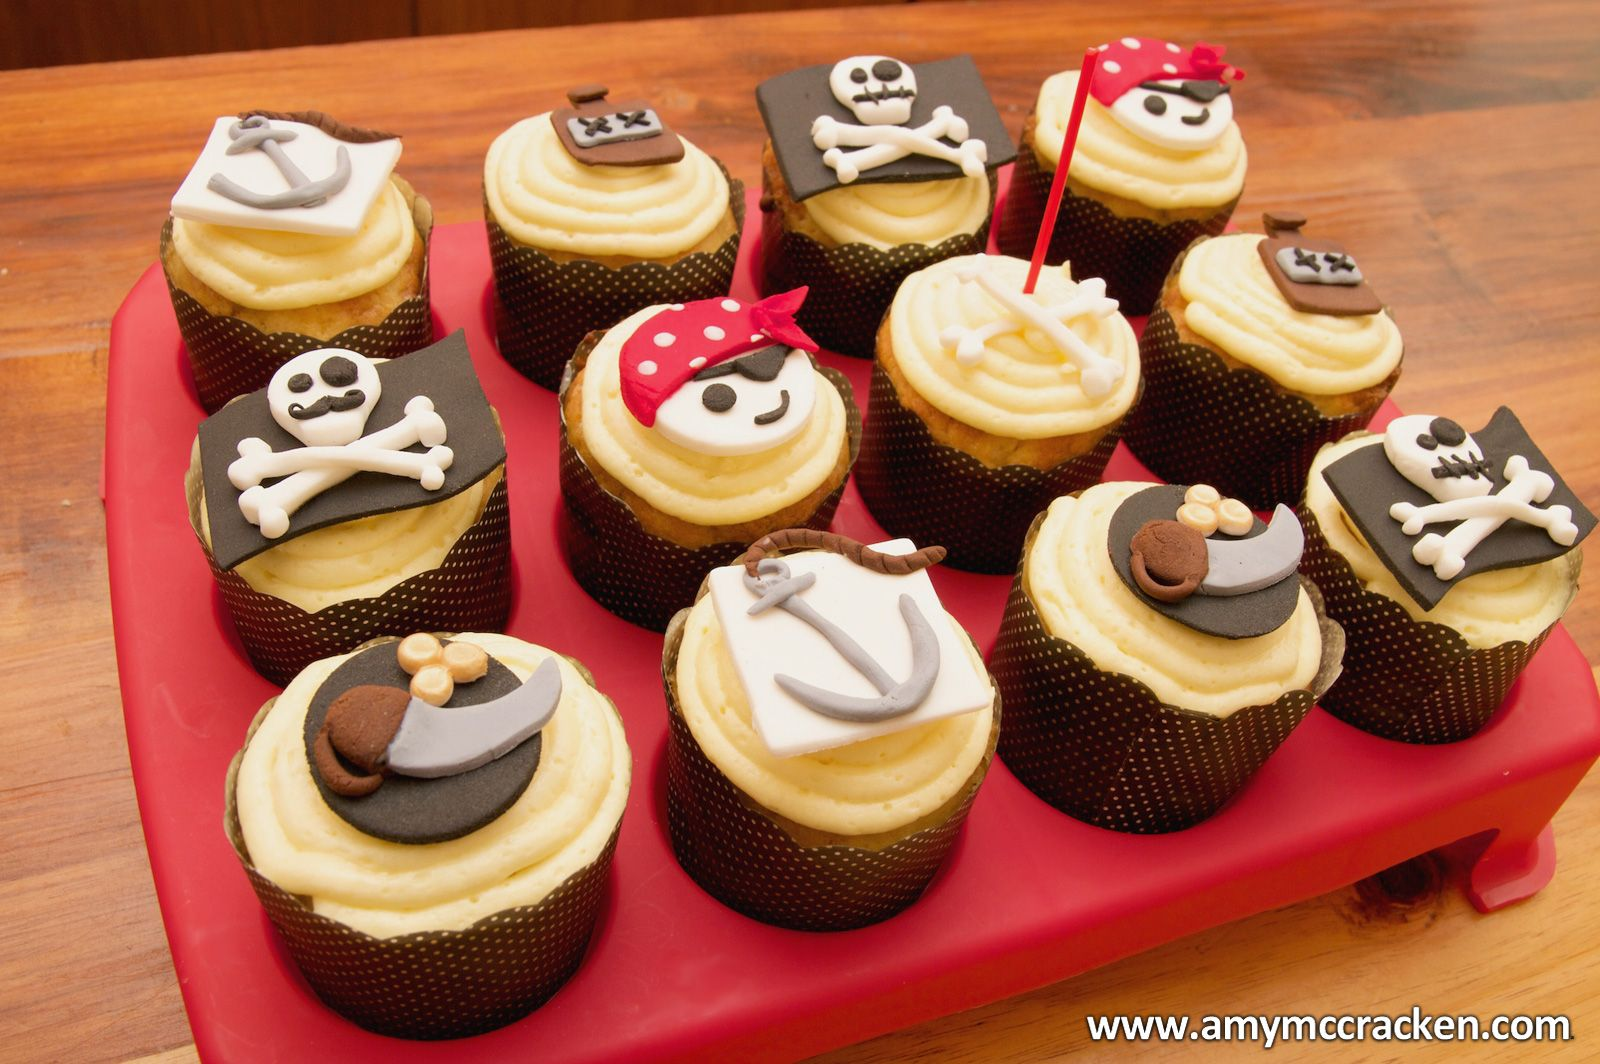 Cake ideas on pinterest pirate cakes marshmallow fondant and - Pirate Themed Cupcake Decorations And Recipe